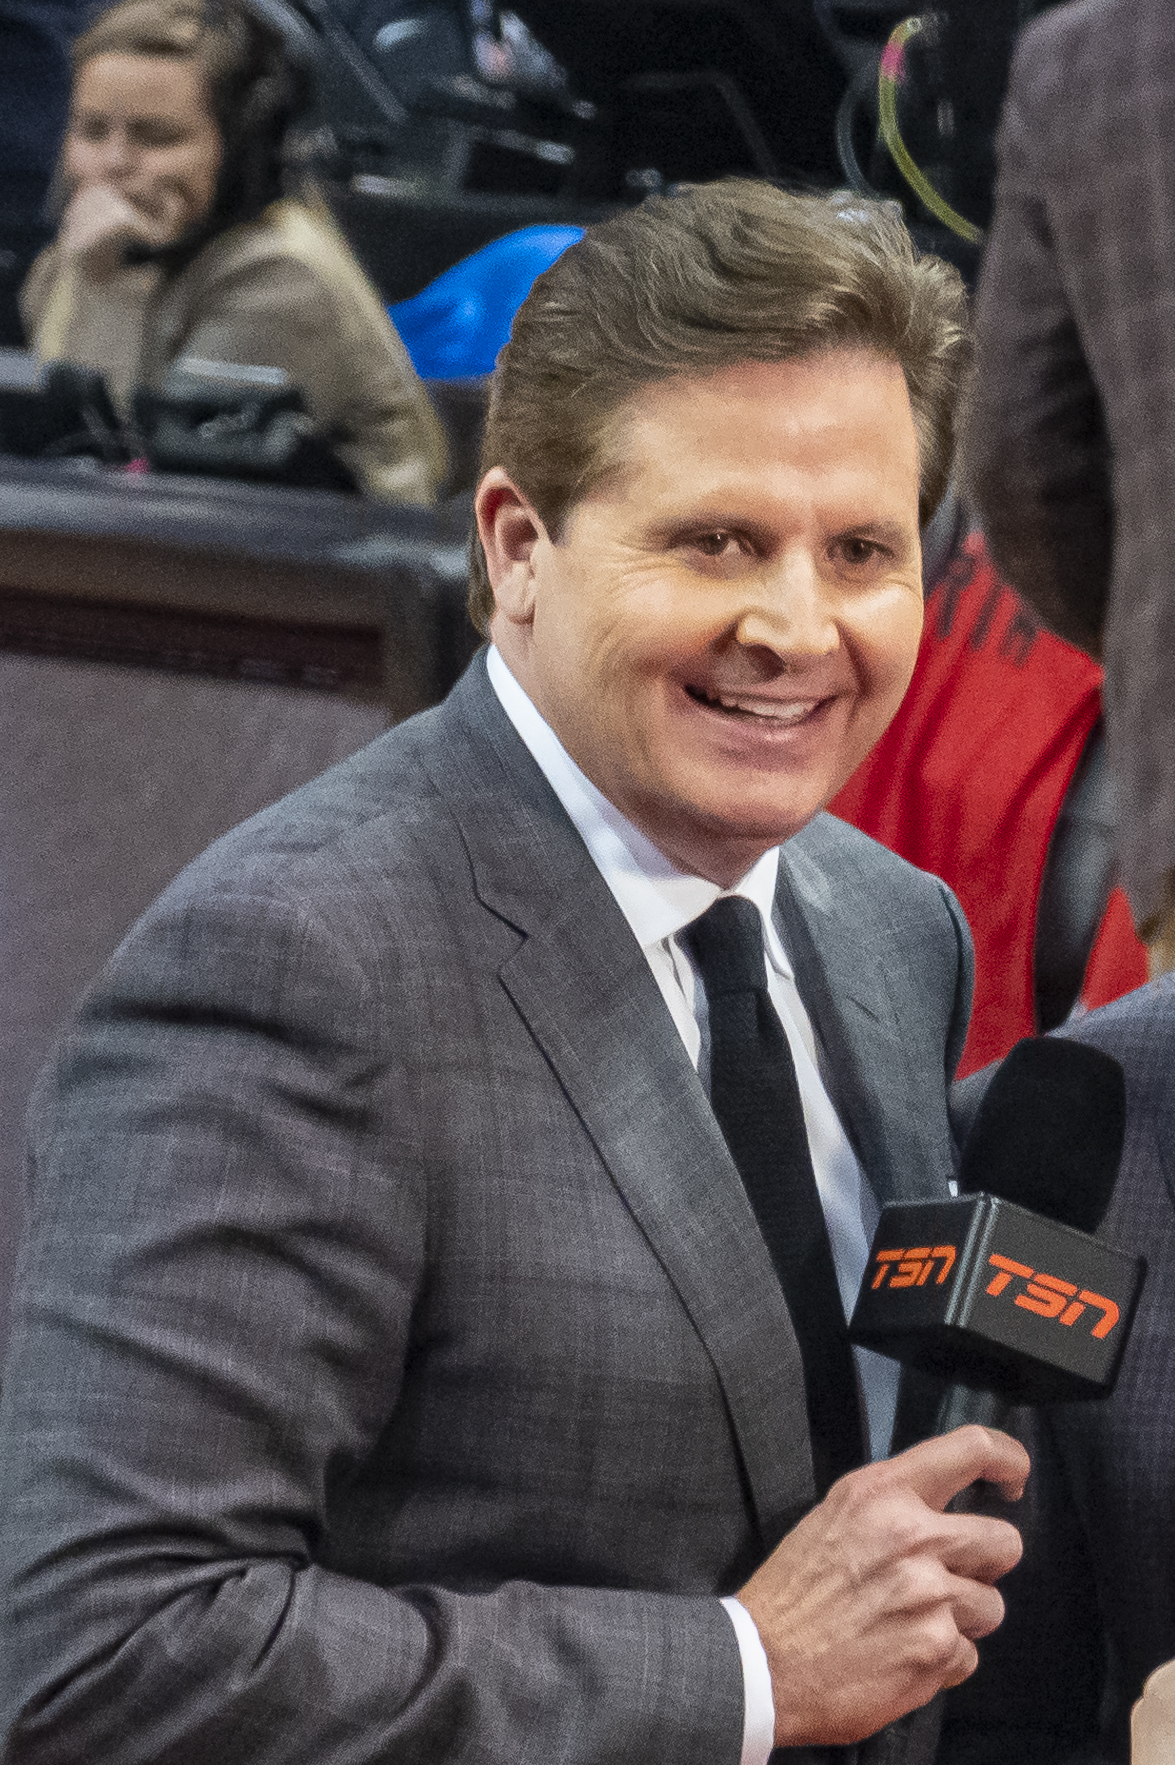 How tall is Matt Devlin?